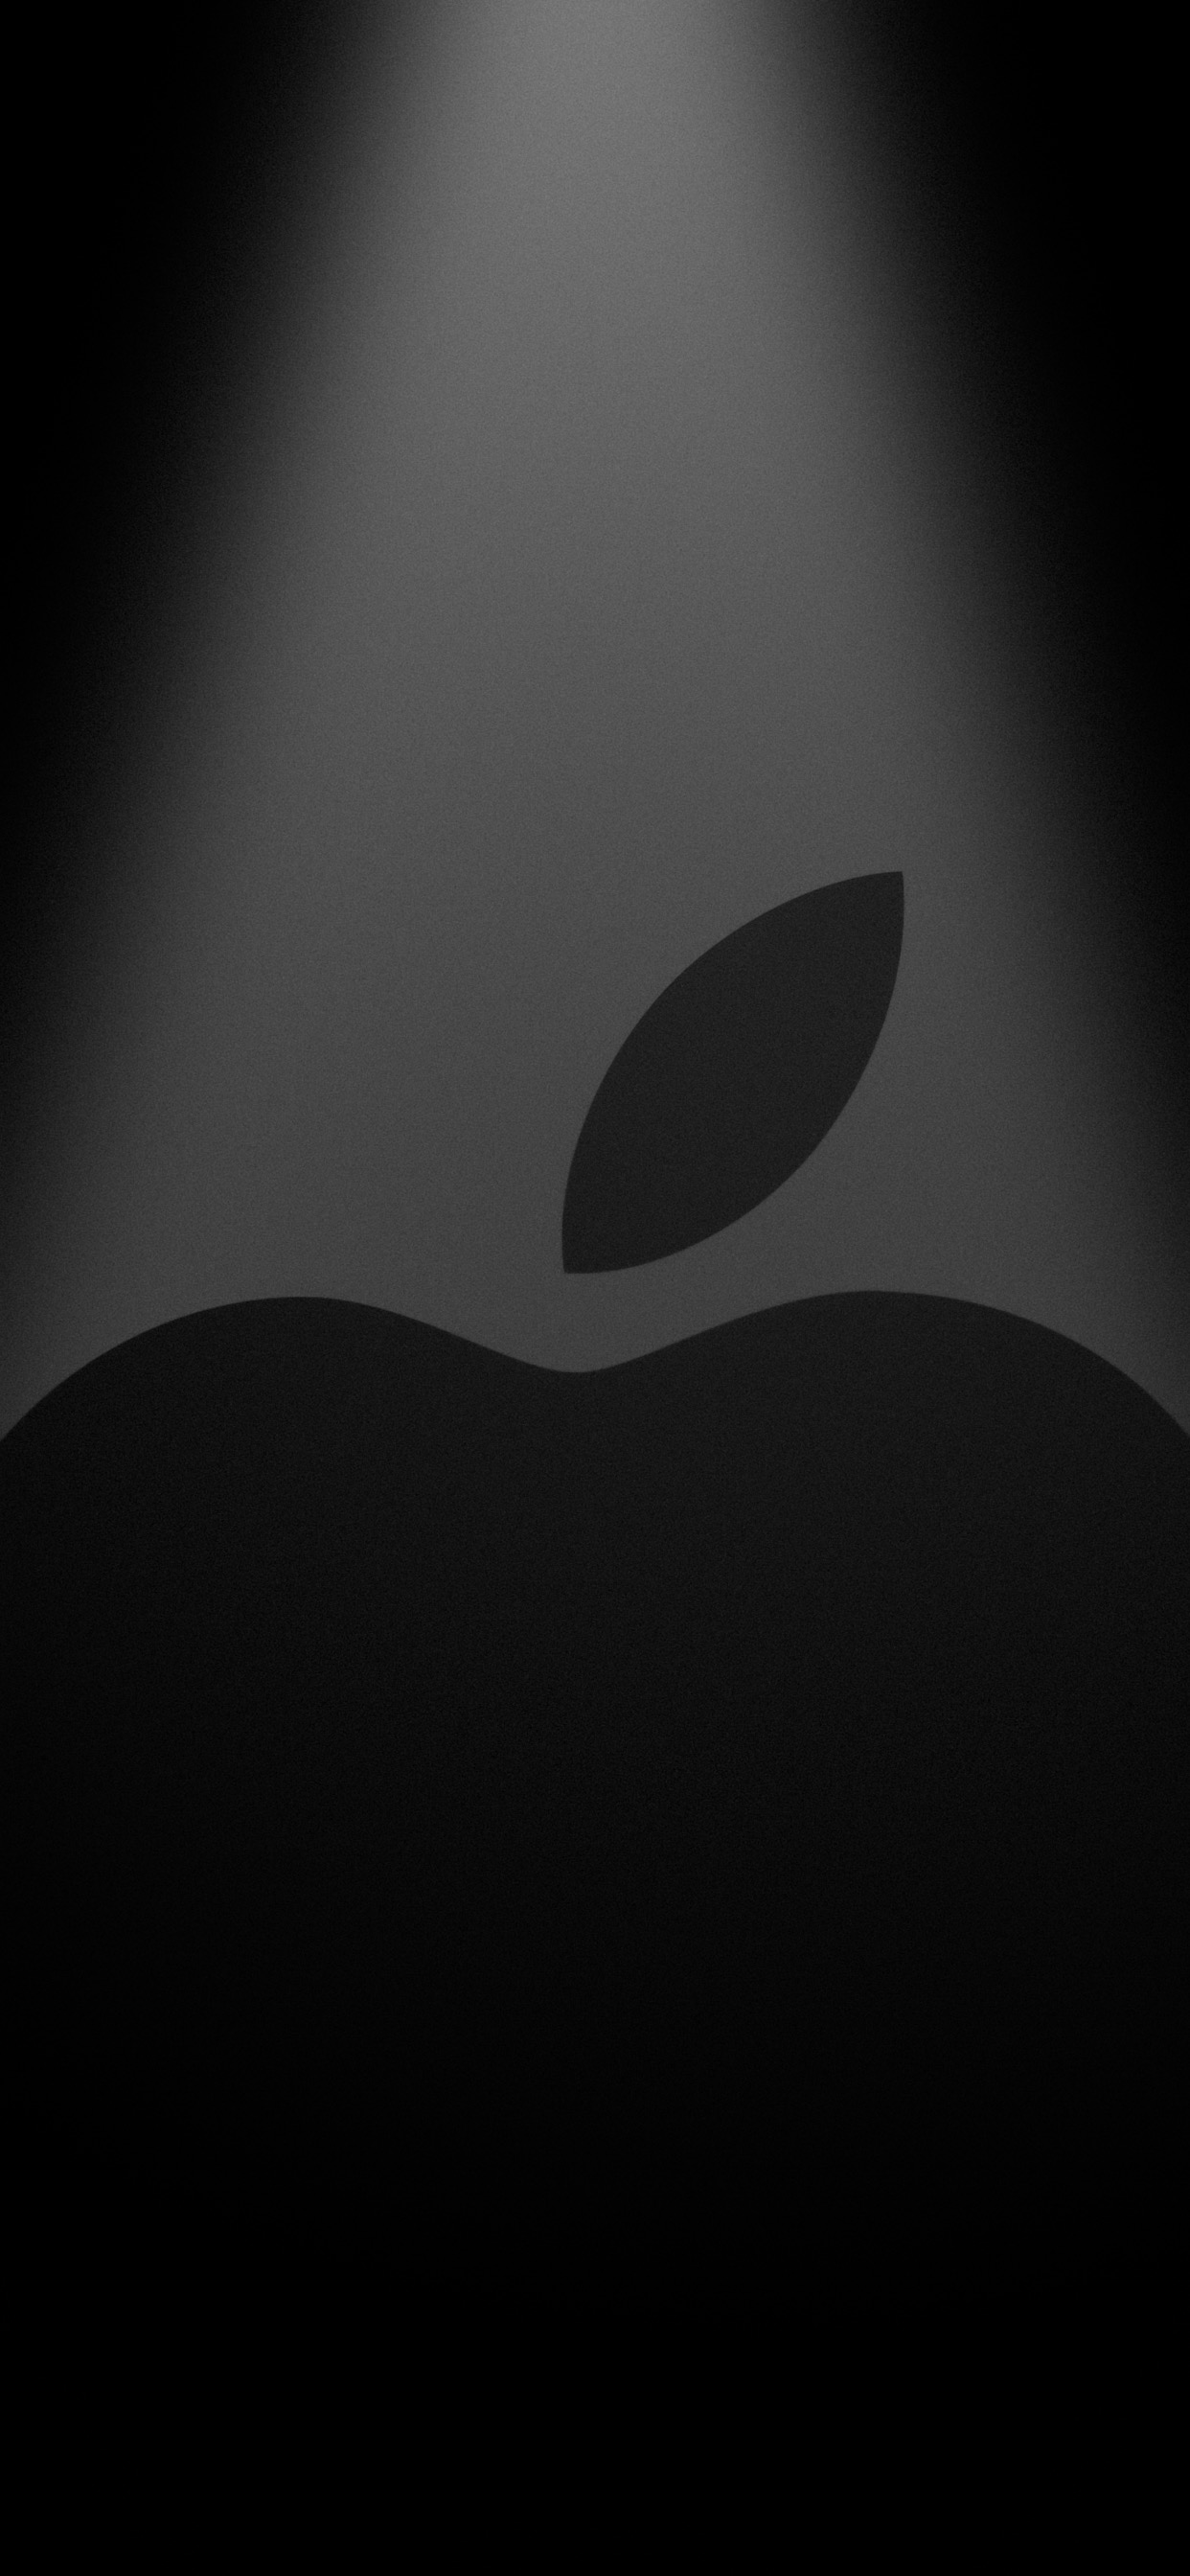 iPhone wallpaper apple event march 2019 v2 Fonds d'écran iPhone du 12/03/2019